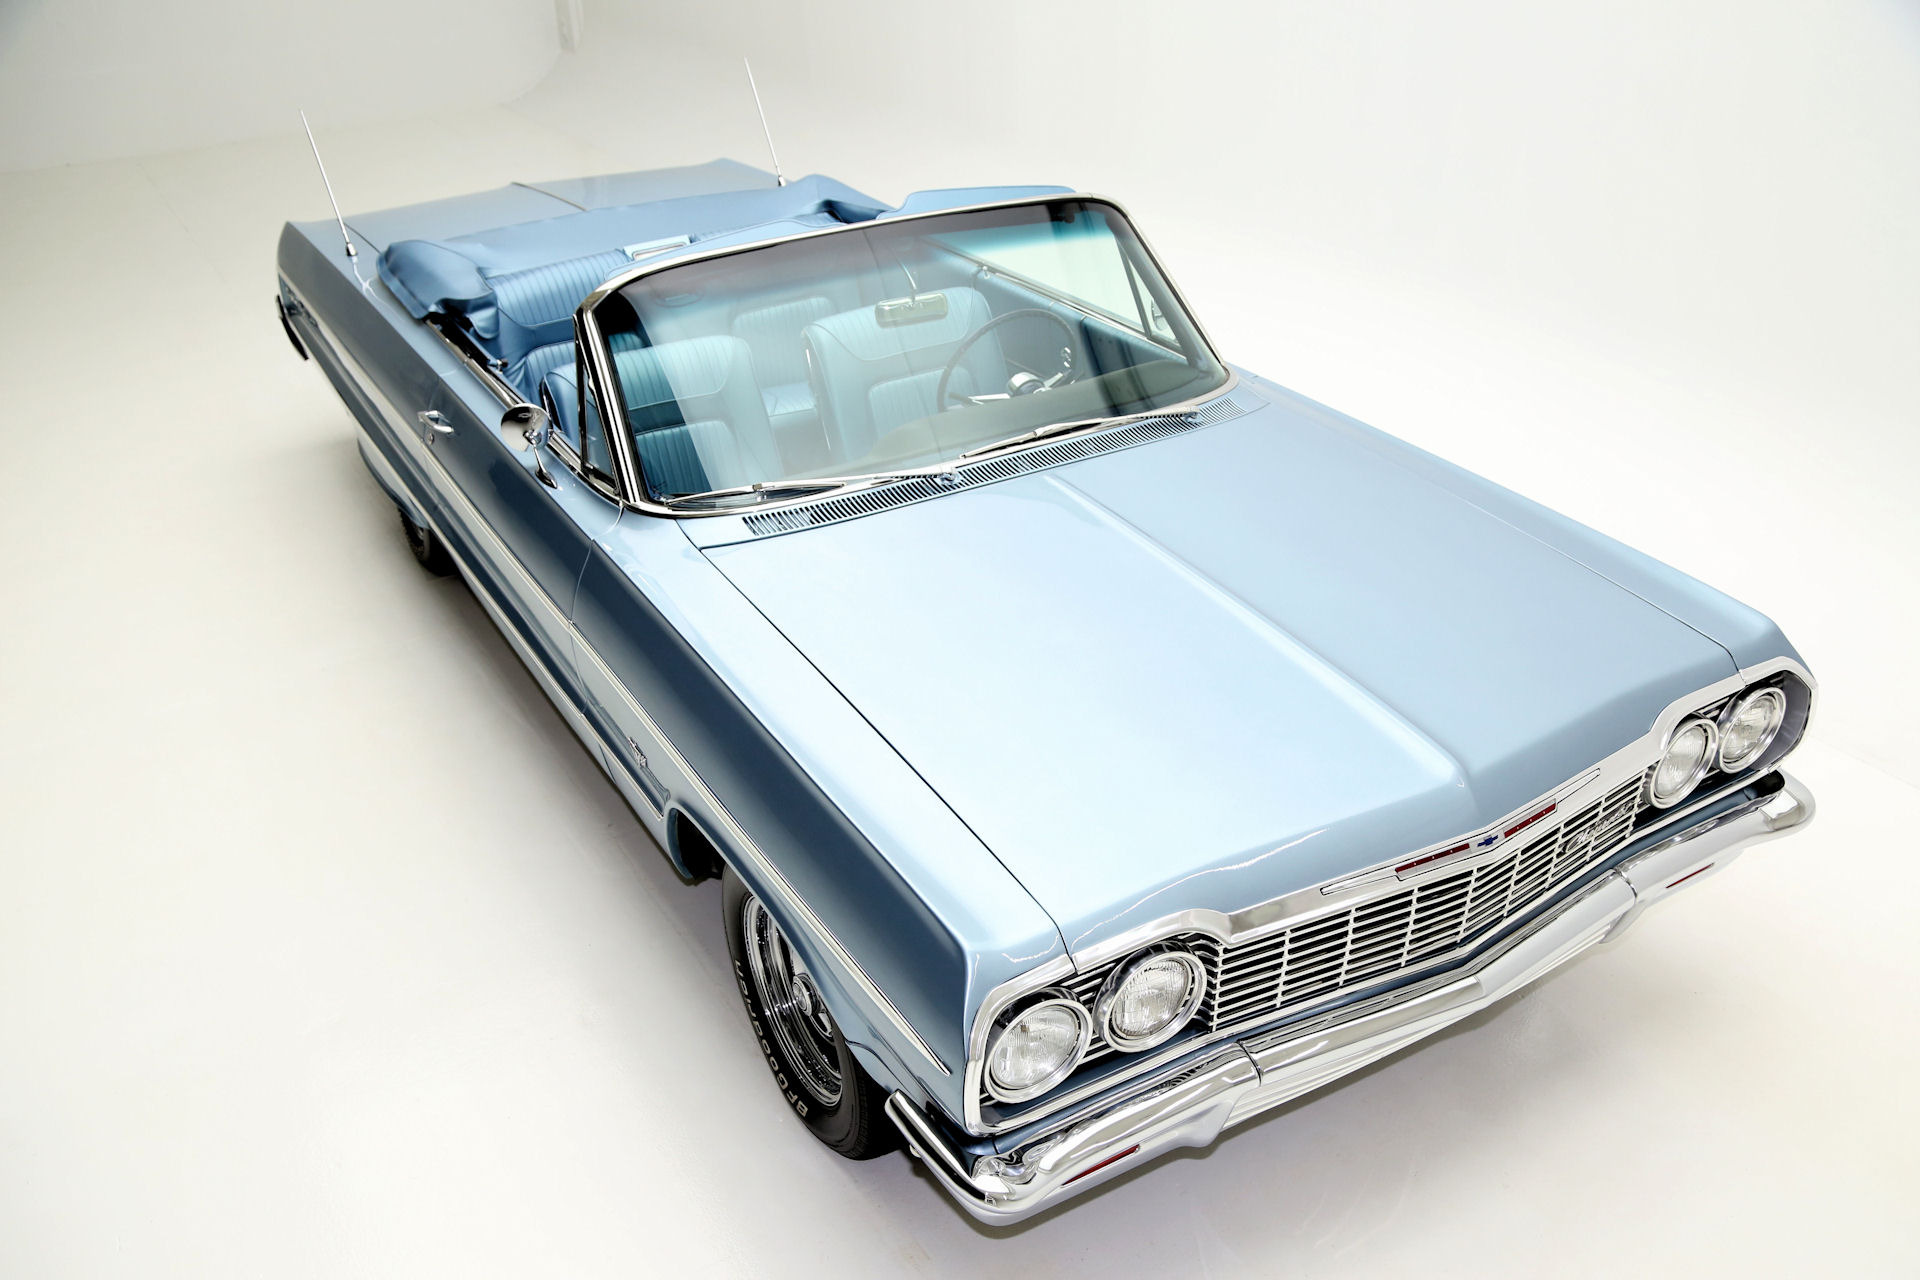 1964 Chevrolet Impala Convertible Frame off restored - American ...